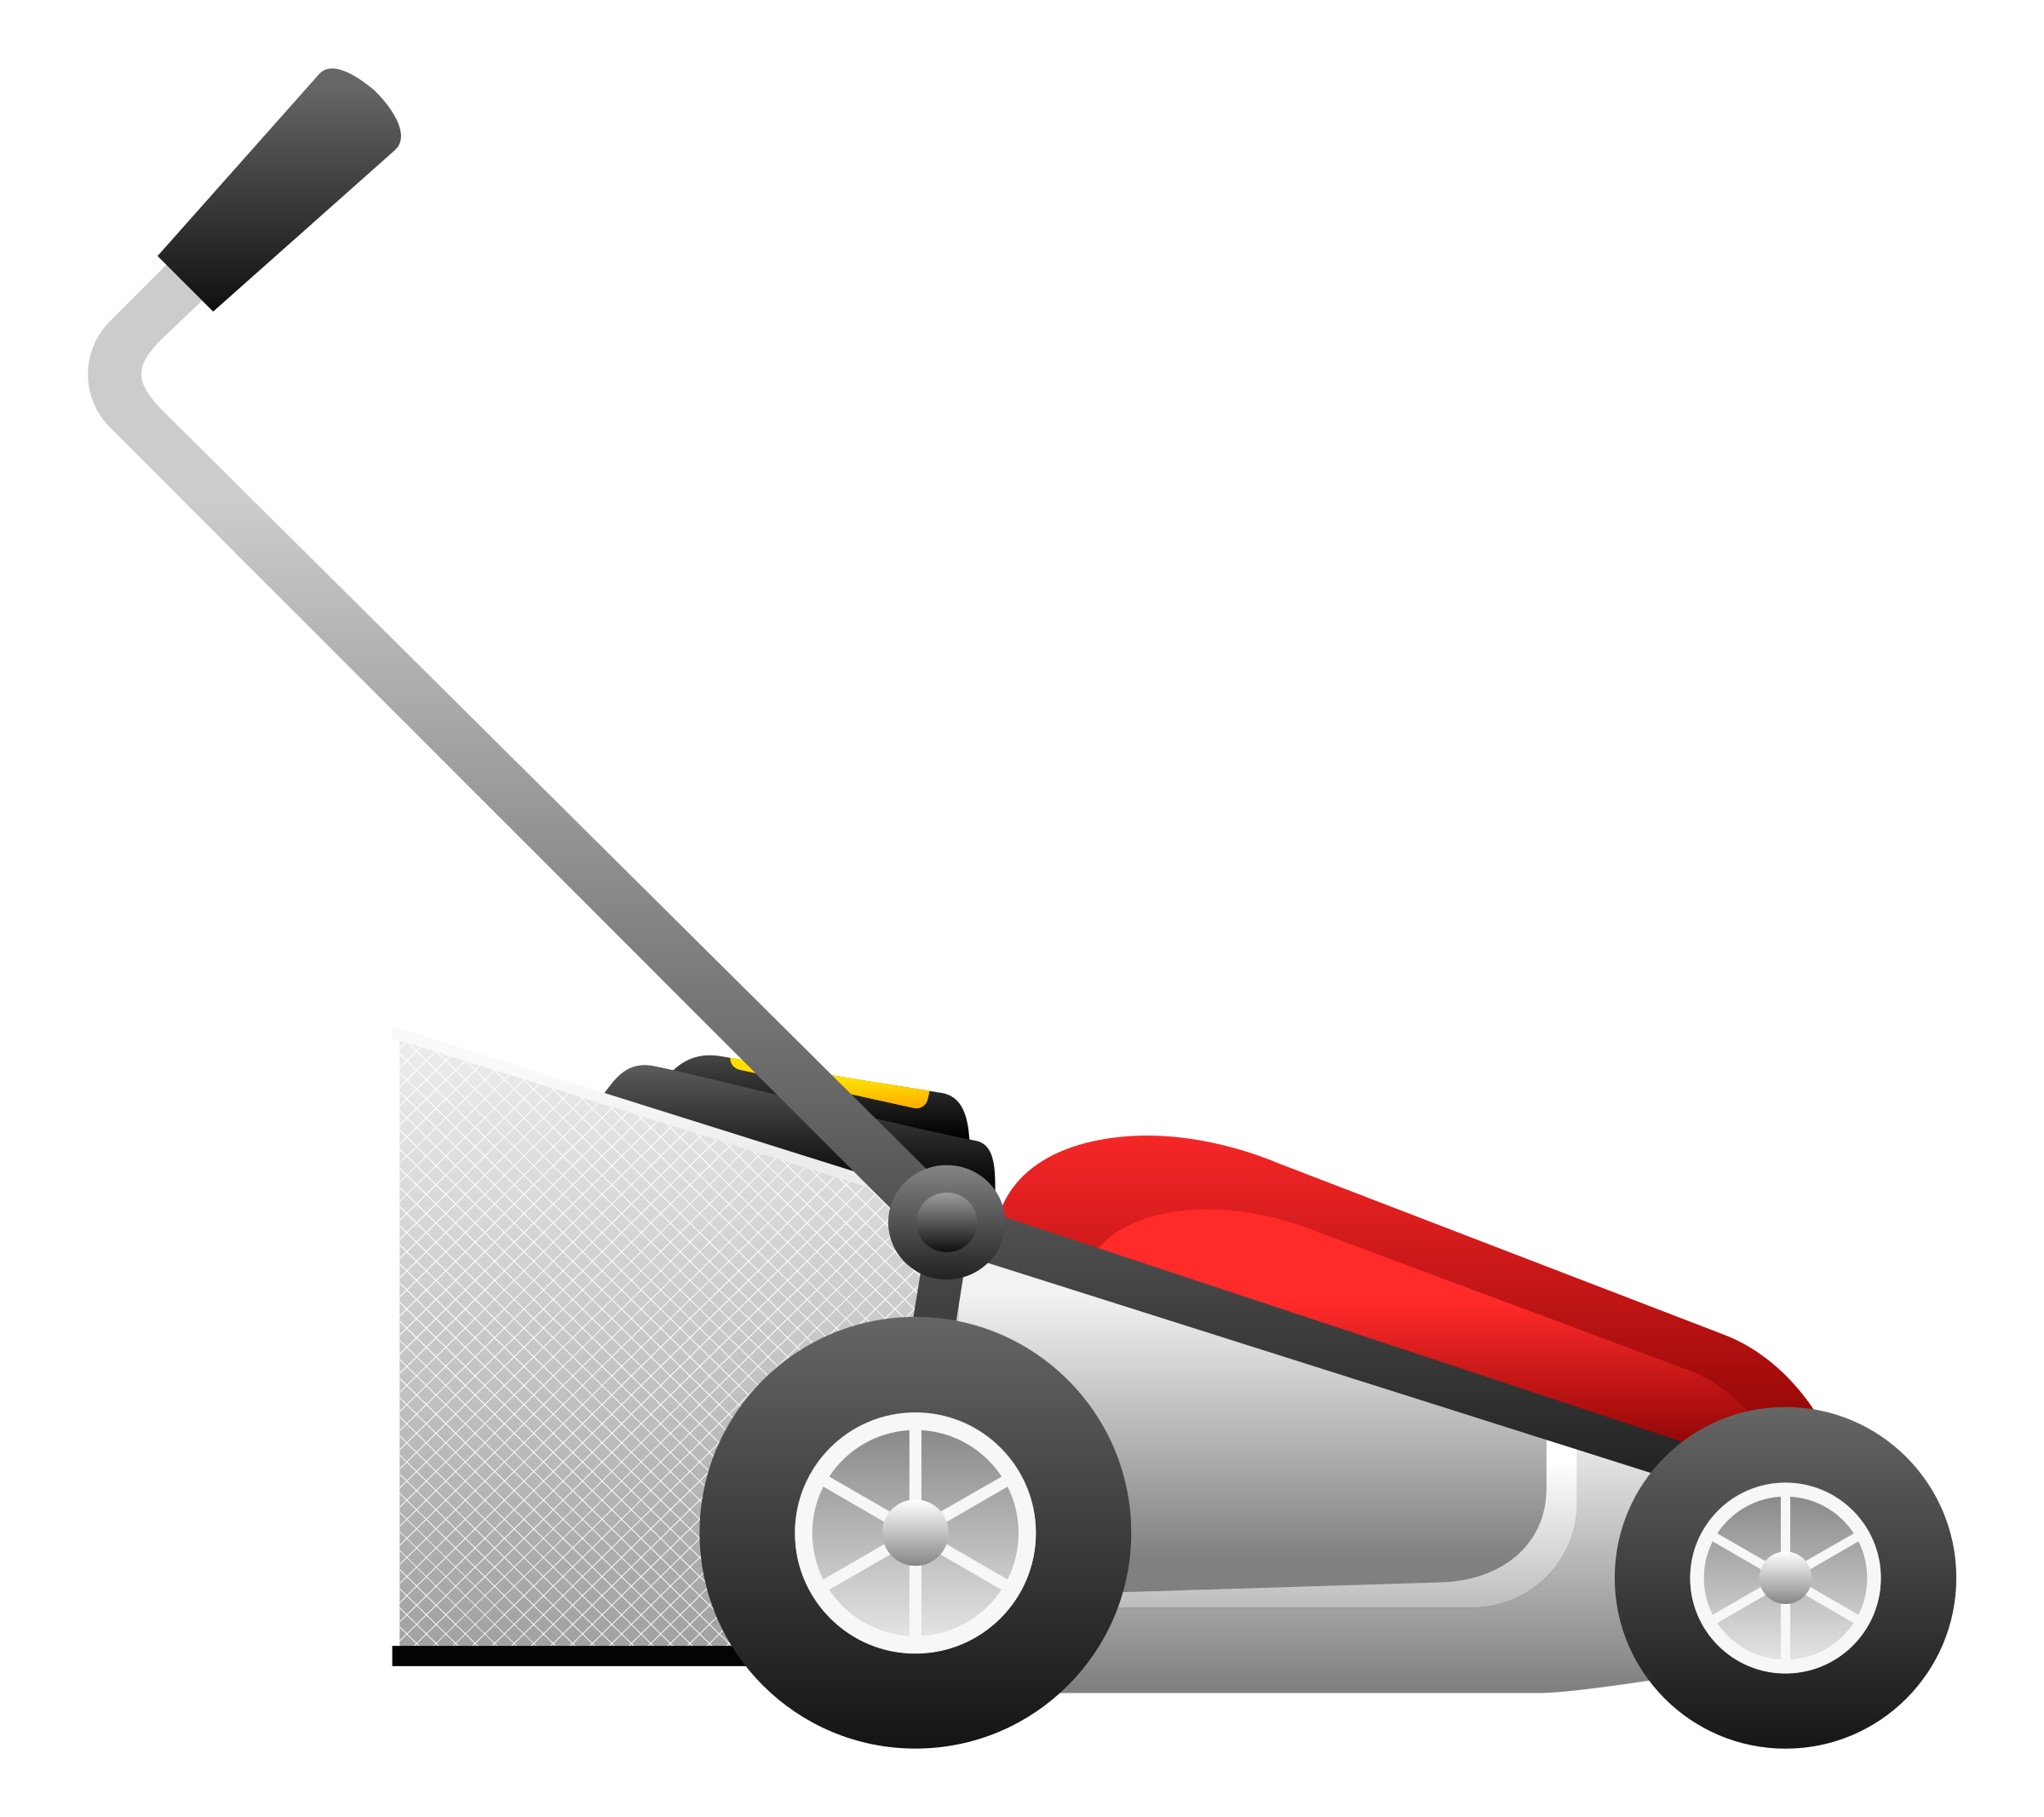 graphic royalty free library Mower icons png free. Mowing clipart edger.